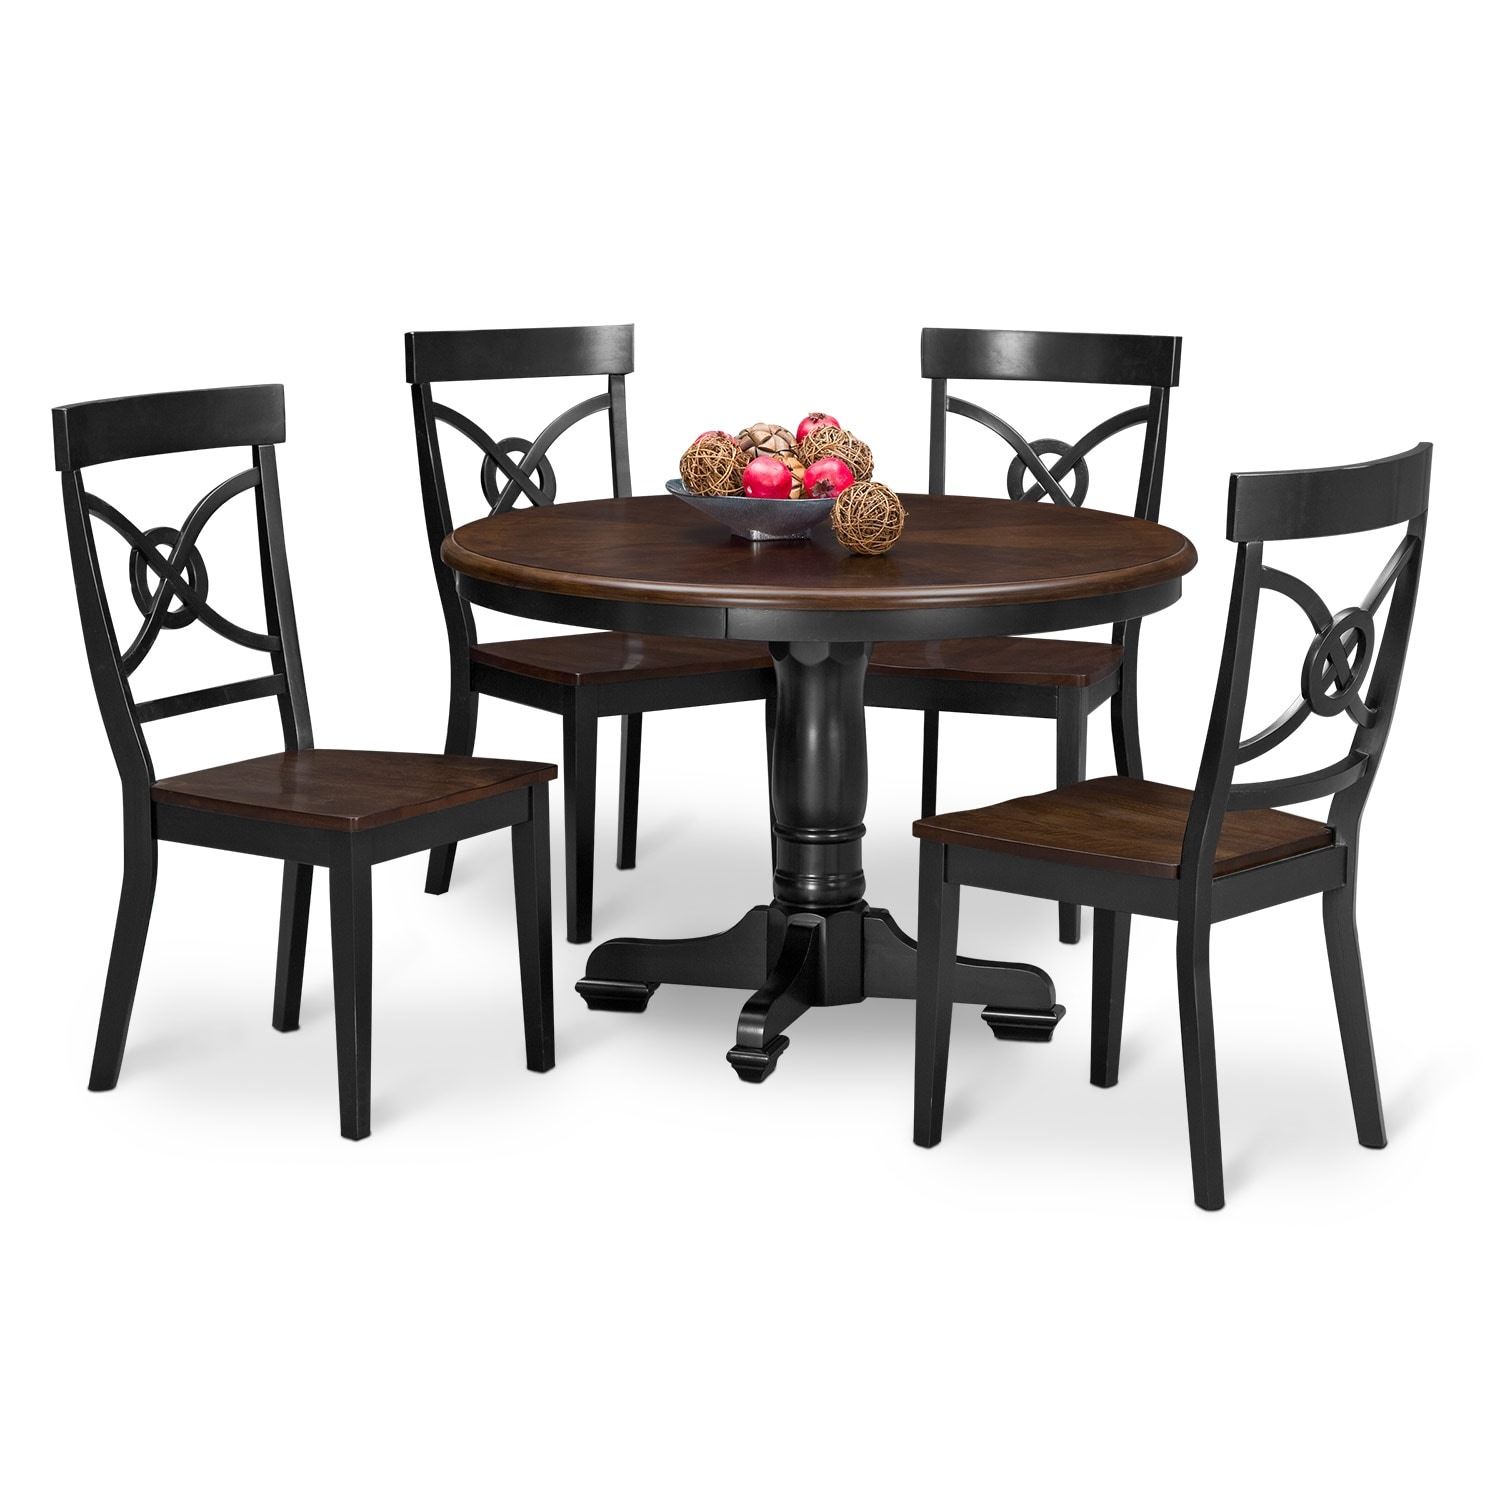 Dining room sets value city furniture crowdbuild for - Dining room sets value city furniture ...